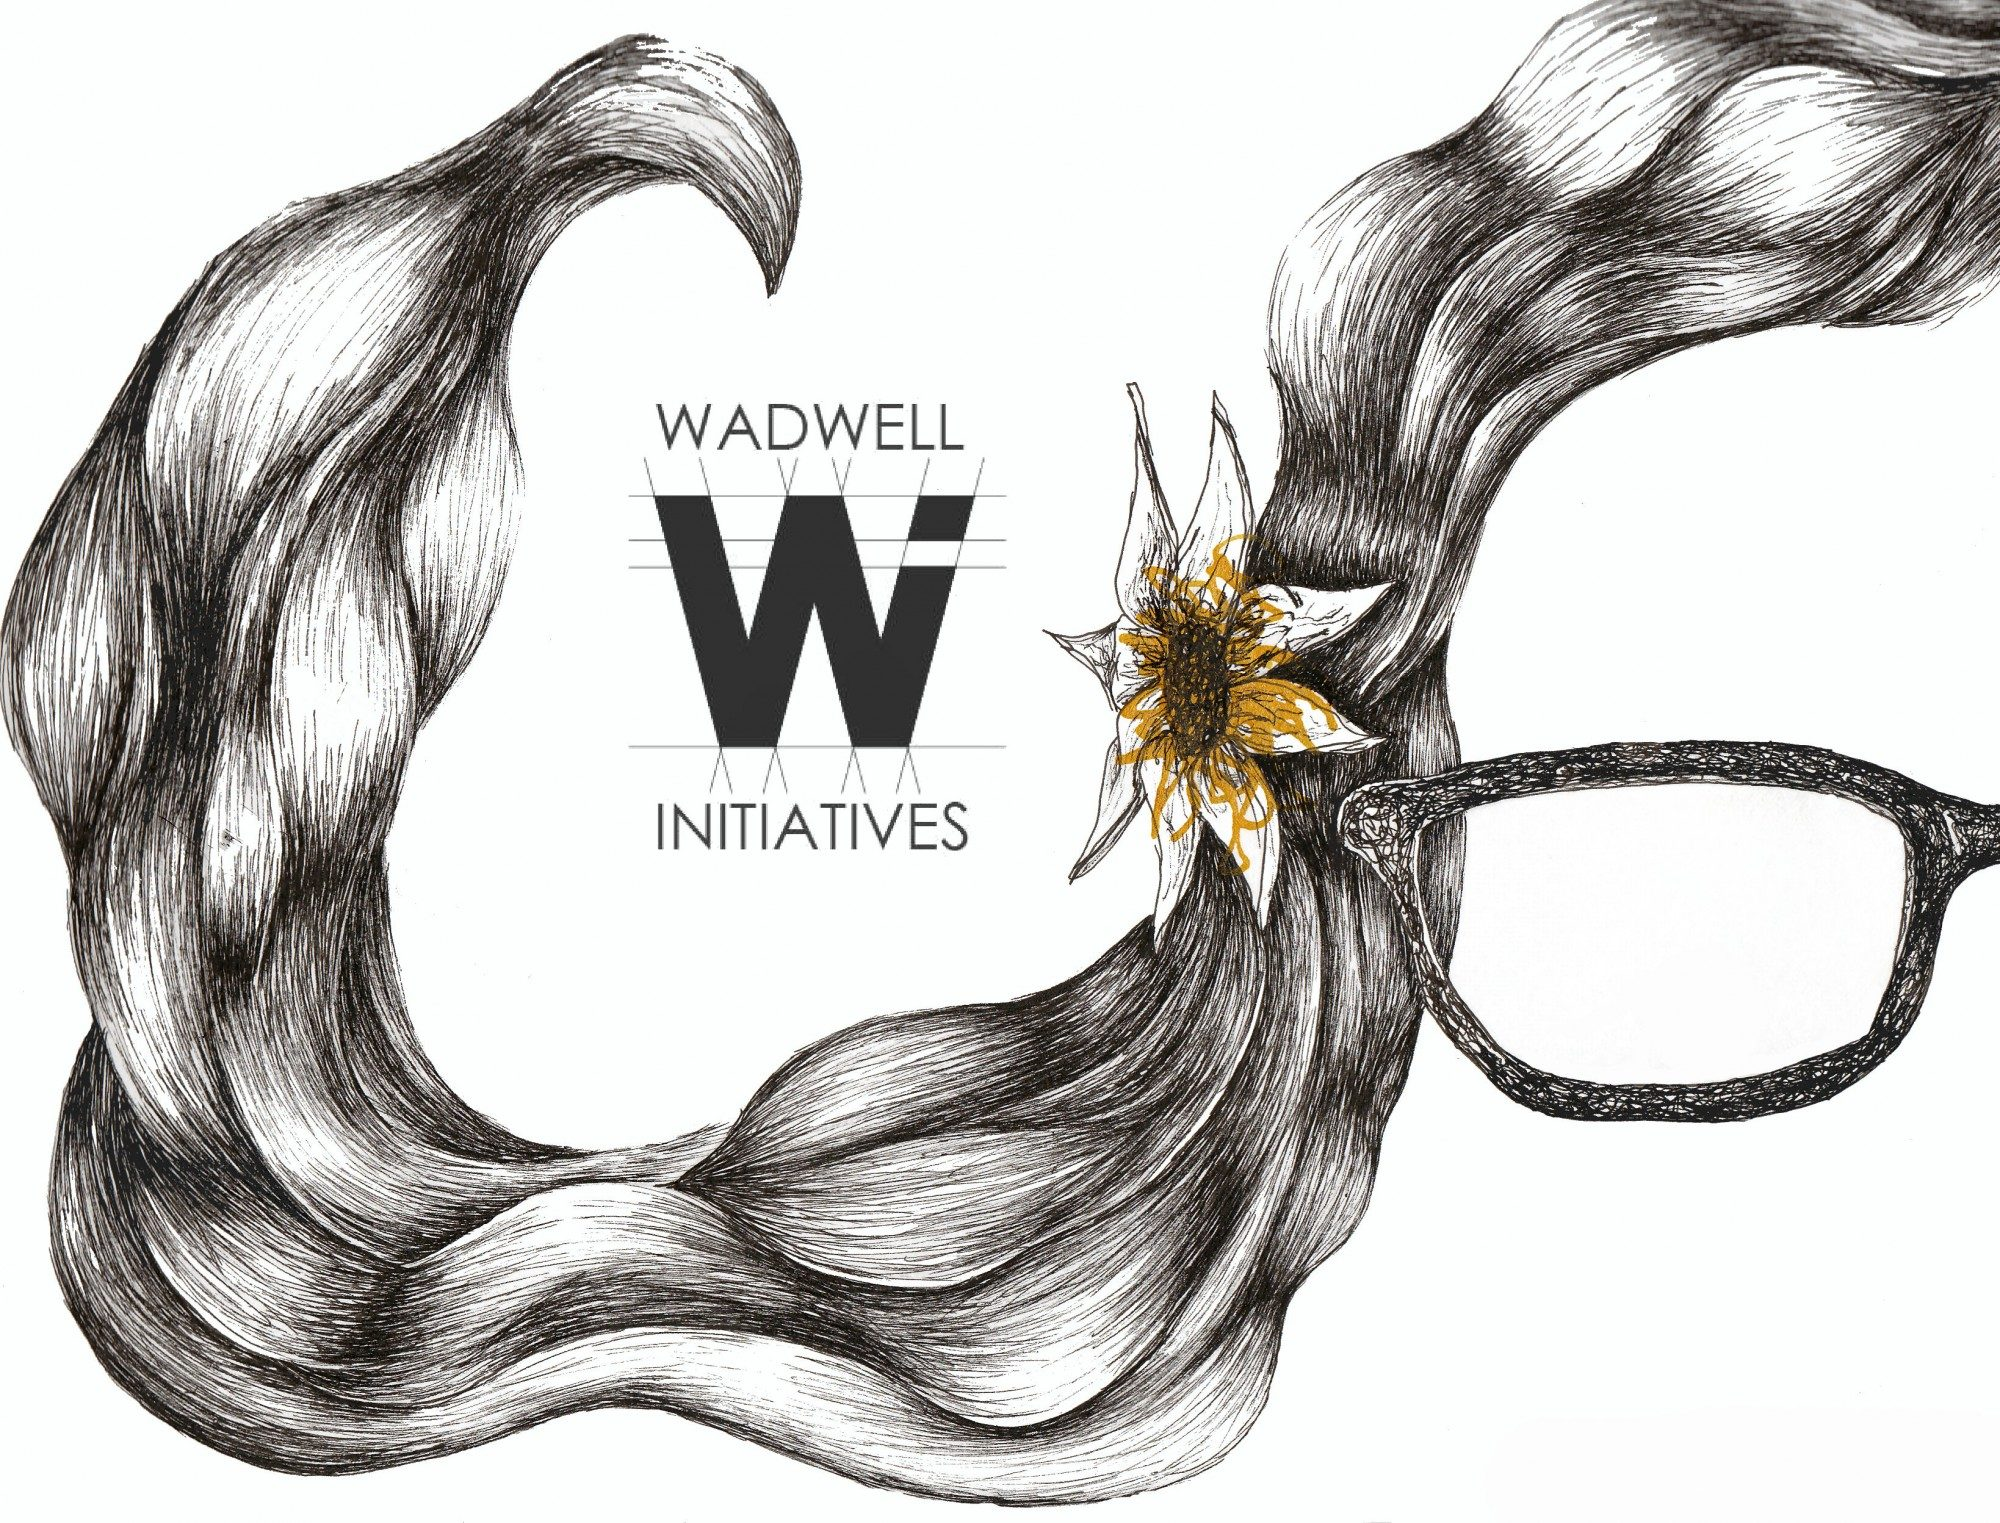 Wadwell Initiatives